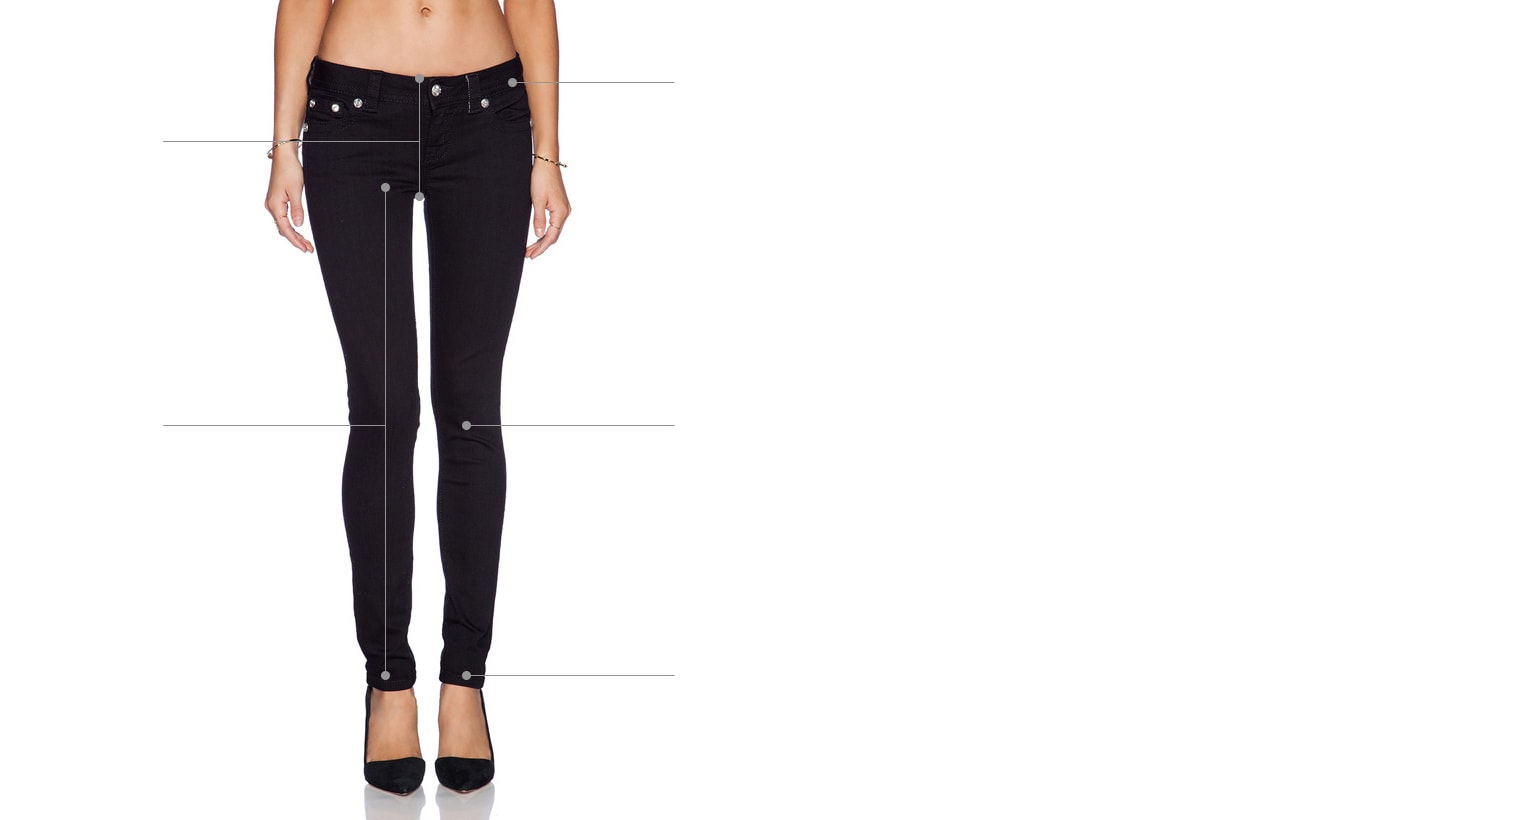 woman in black jeans with tooltips on how to measure denim or pants